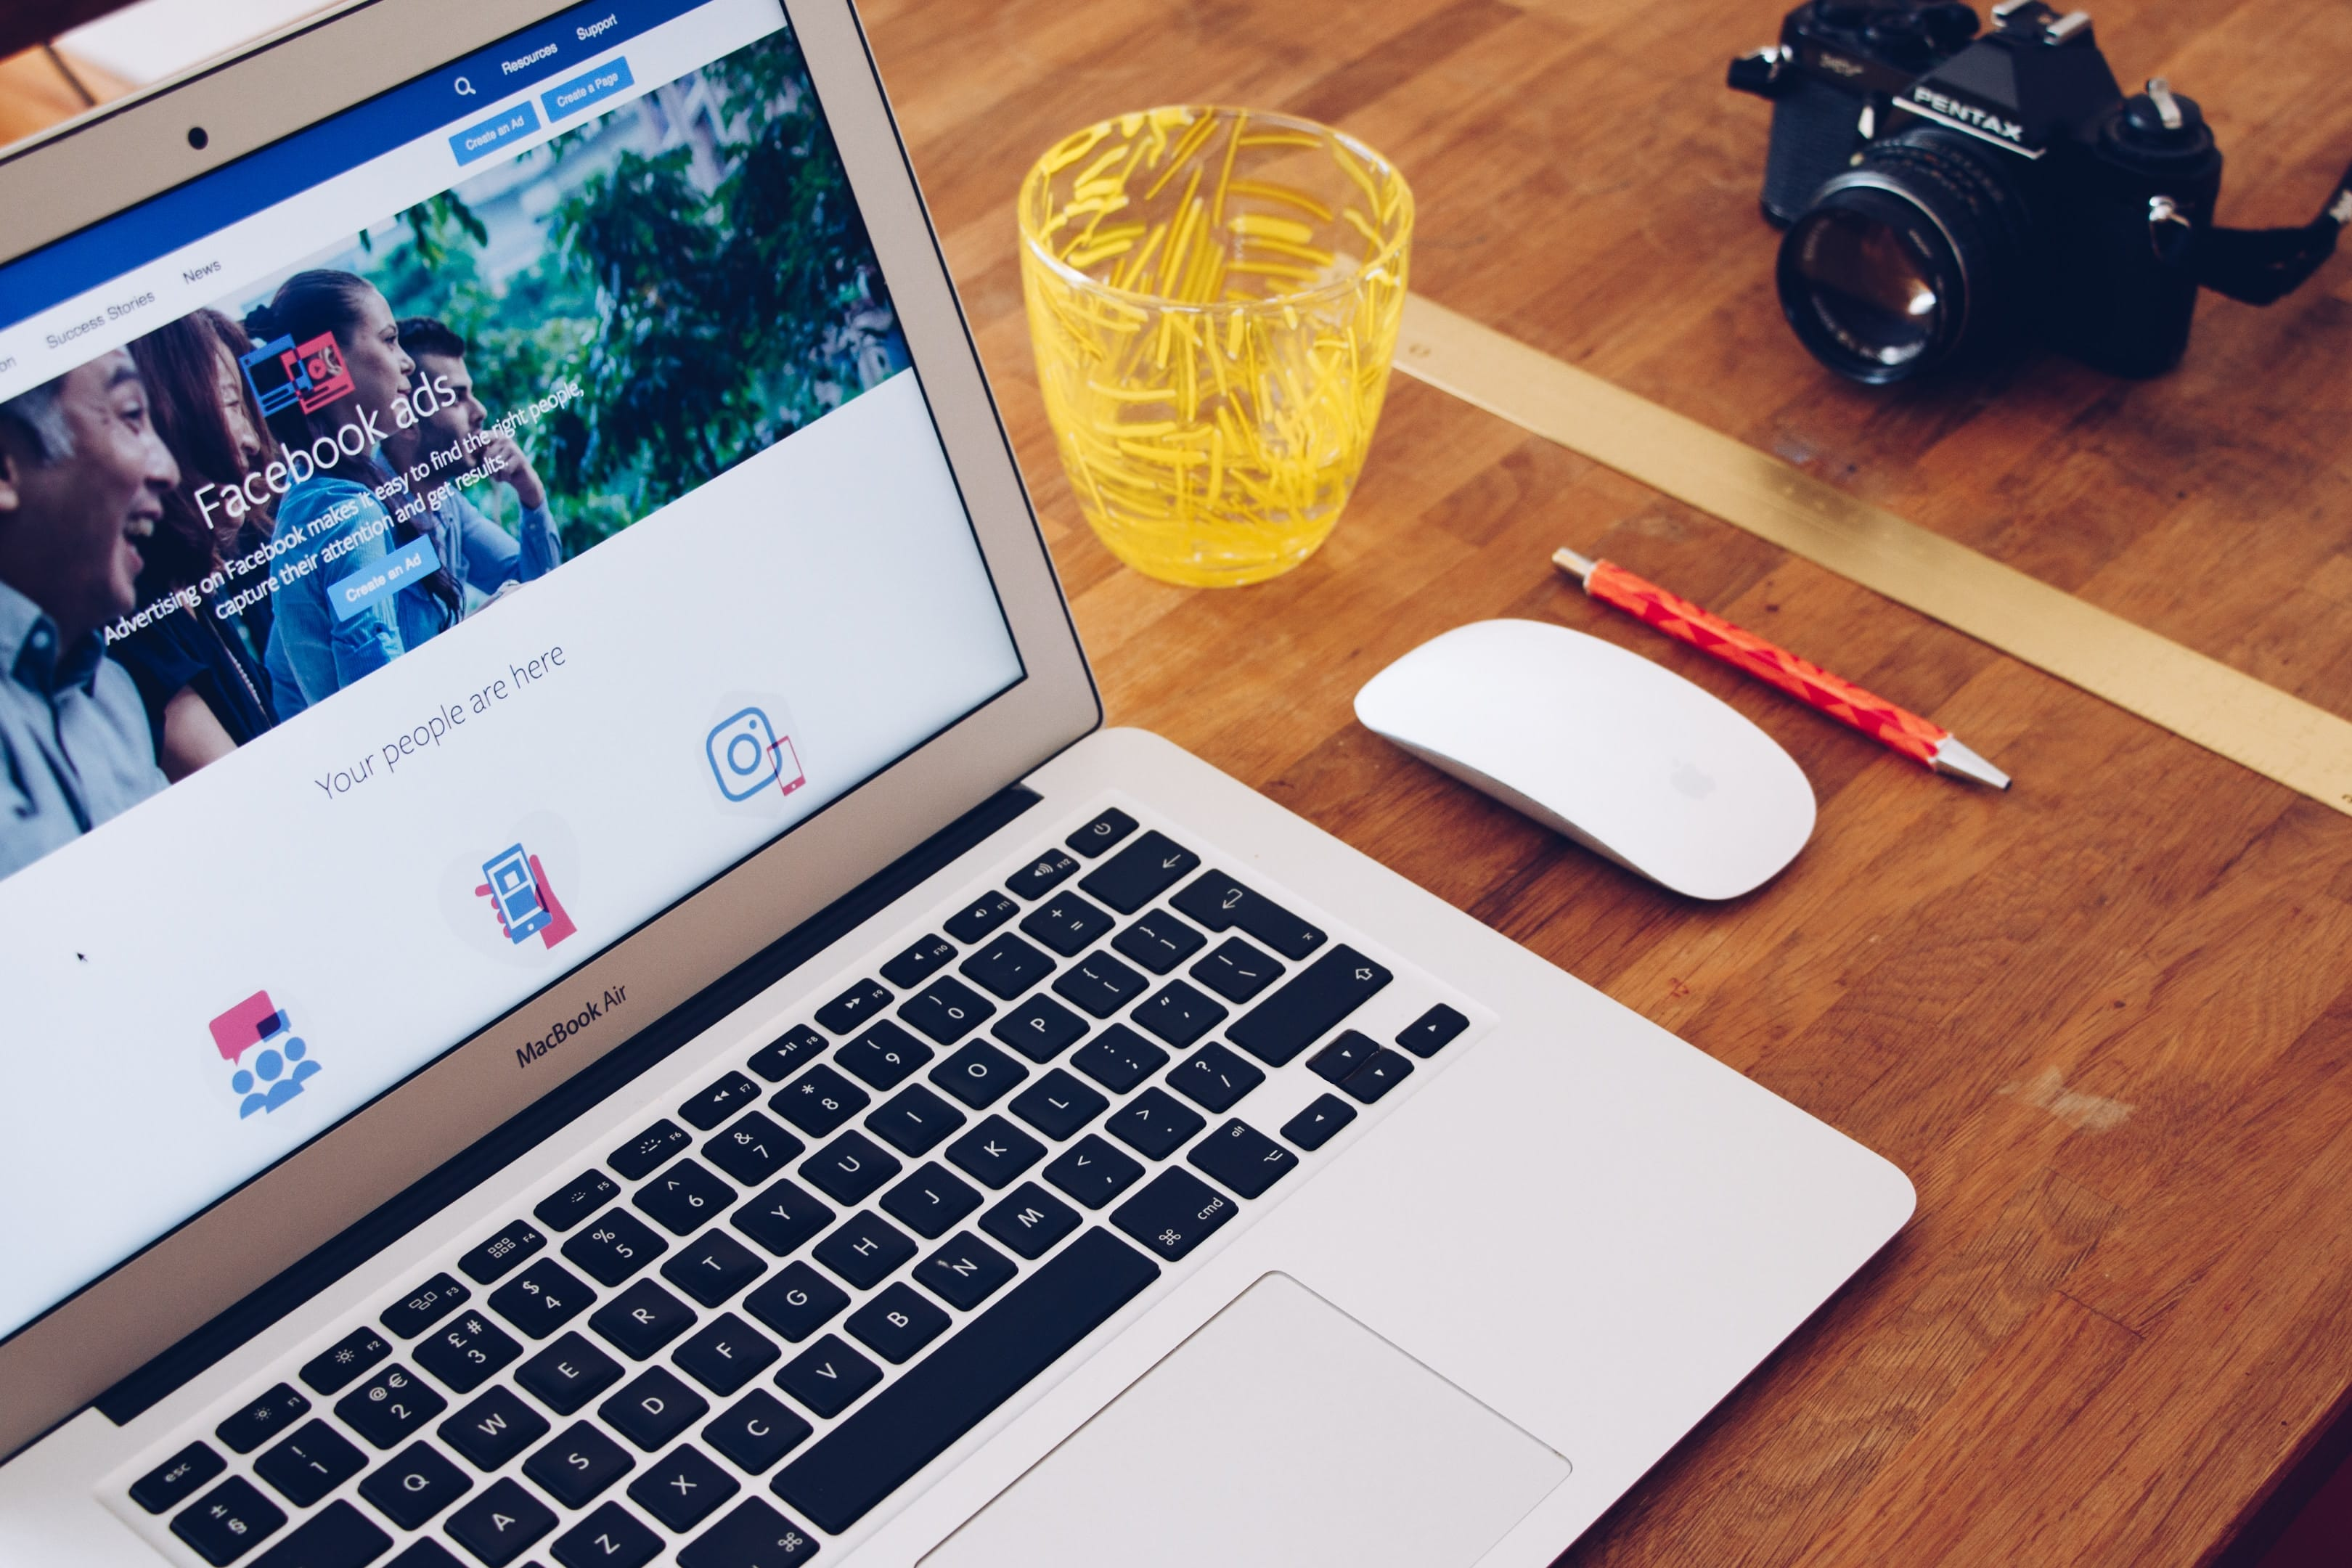 MacBook Air on table, Facebook open onscreen; image by Will Francis, via Unsplash.com.